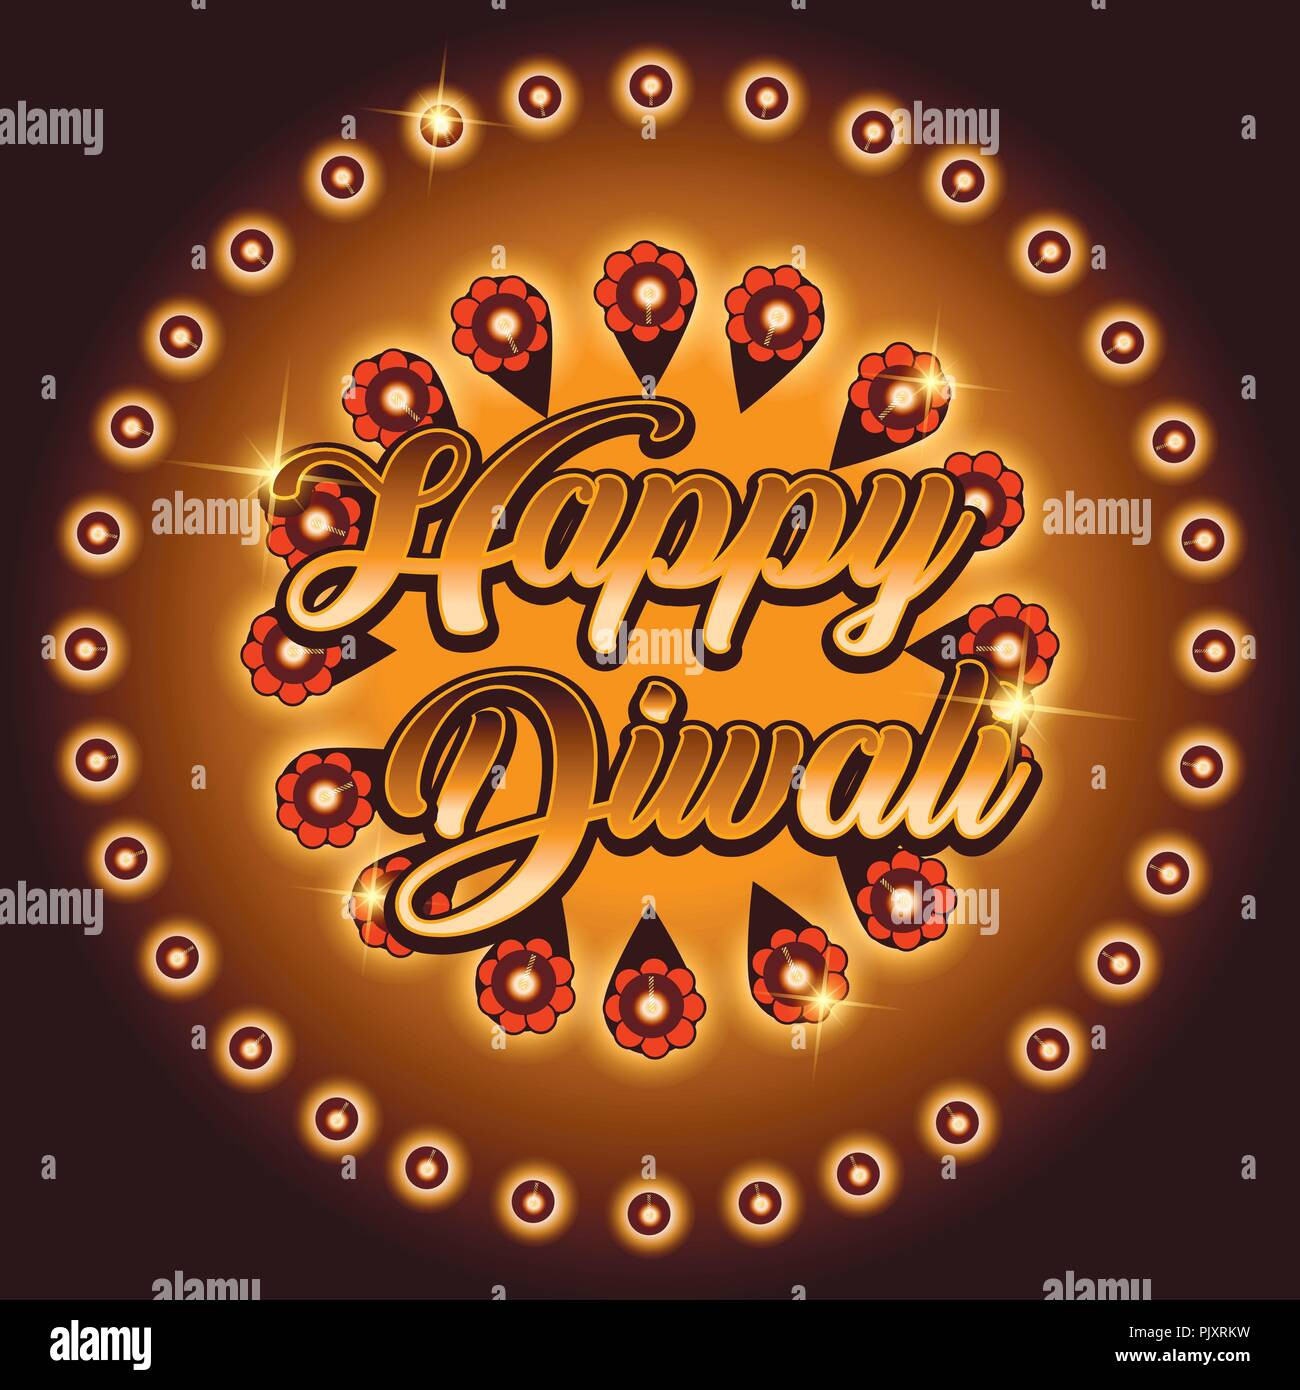 Beautiful Greeting Card For Festival Of Diwali Celebration With